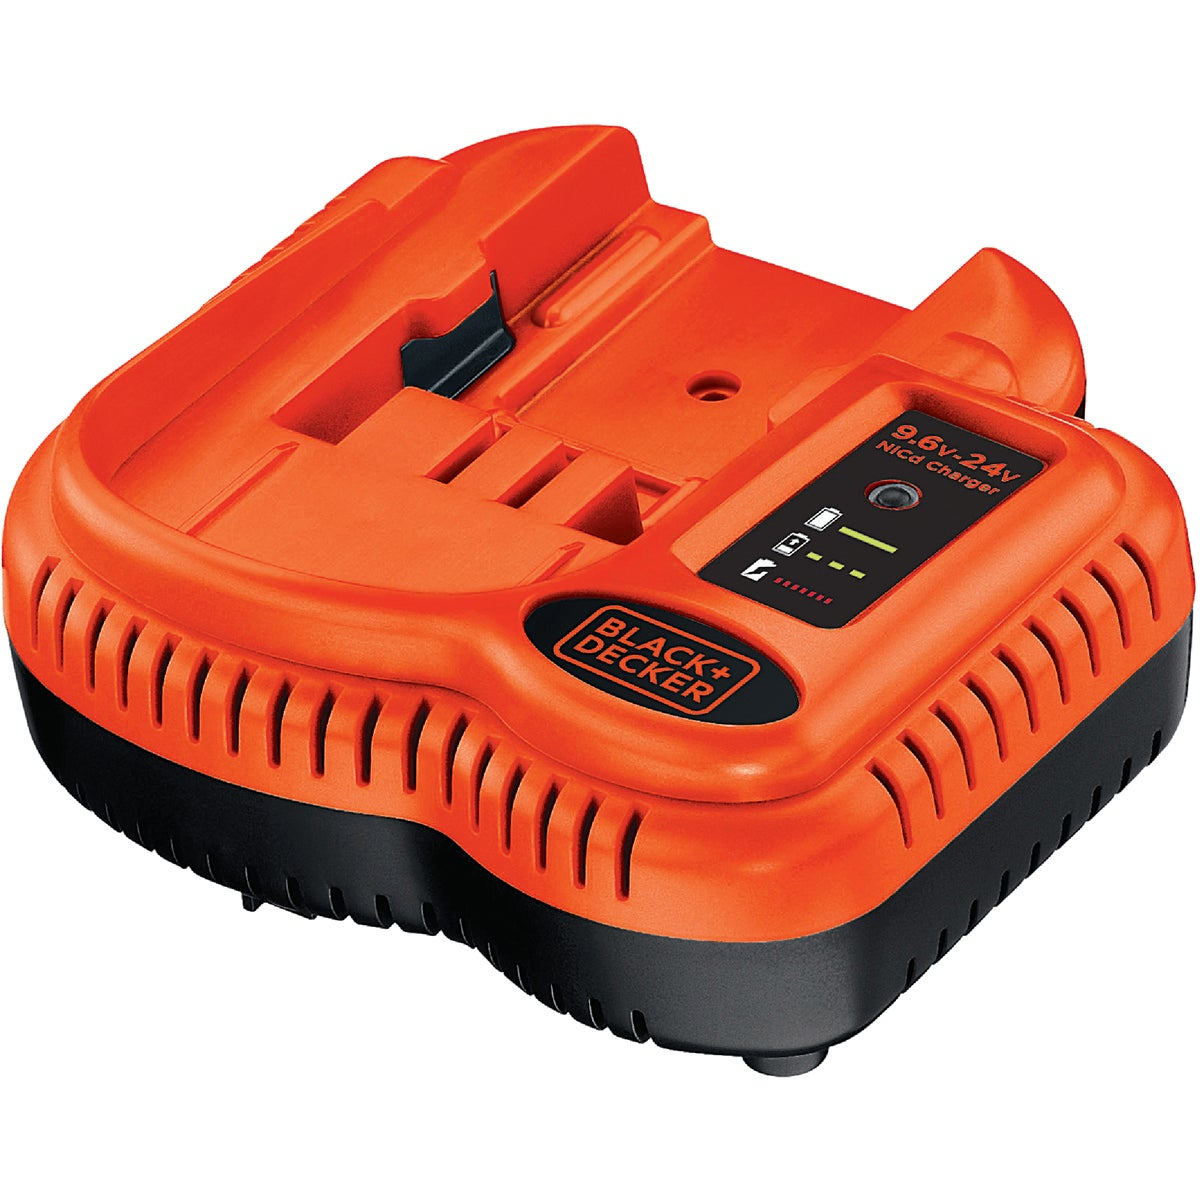 NICAD BATTERY CHARGER - BDCCN24 by Black & Decker